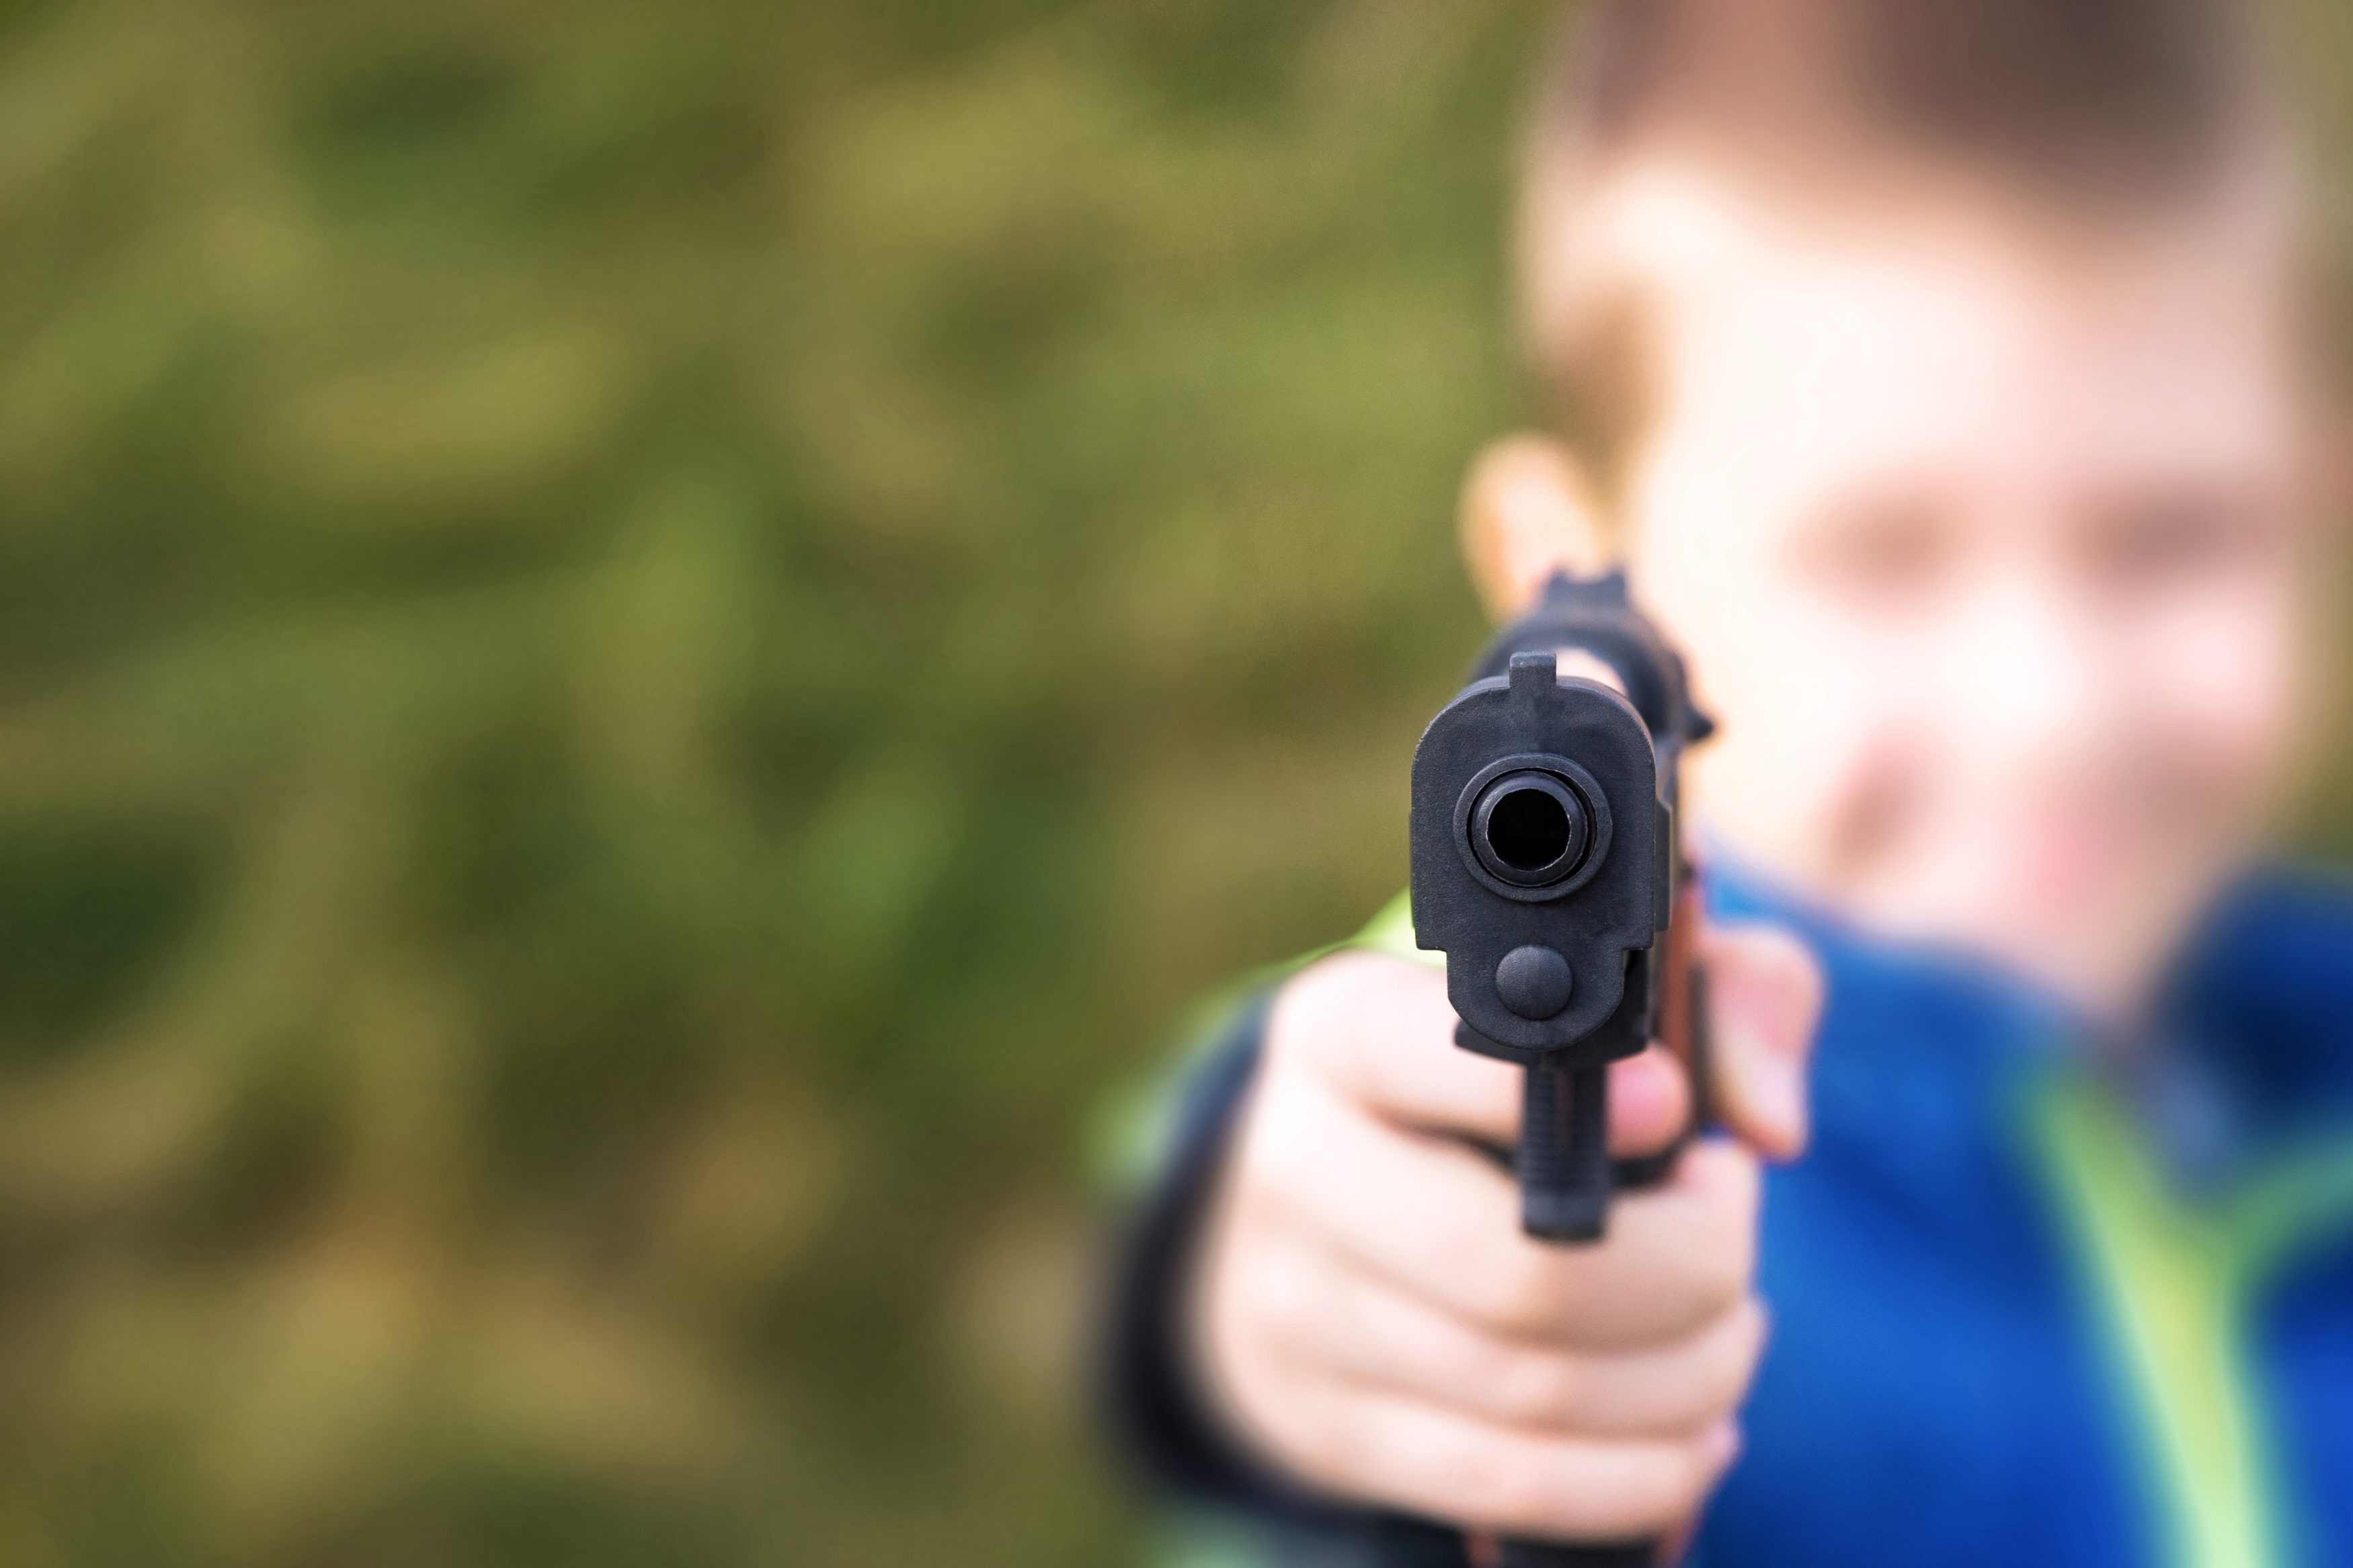 kid-with-gun-3500x2333.jpg